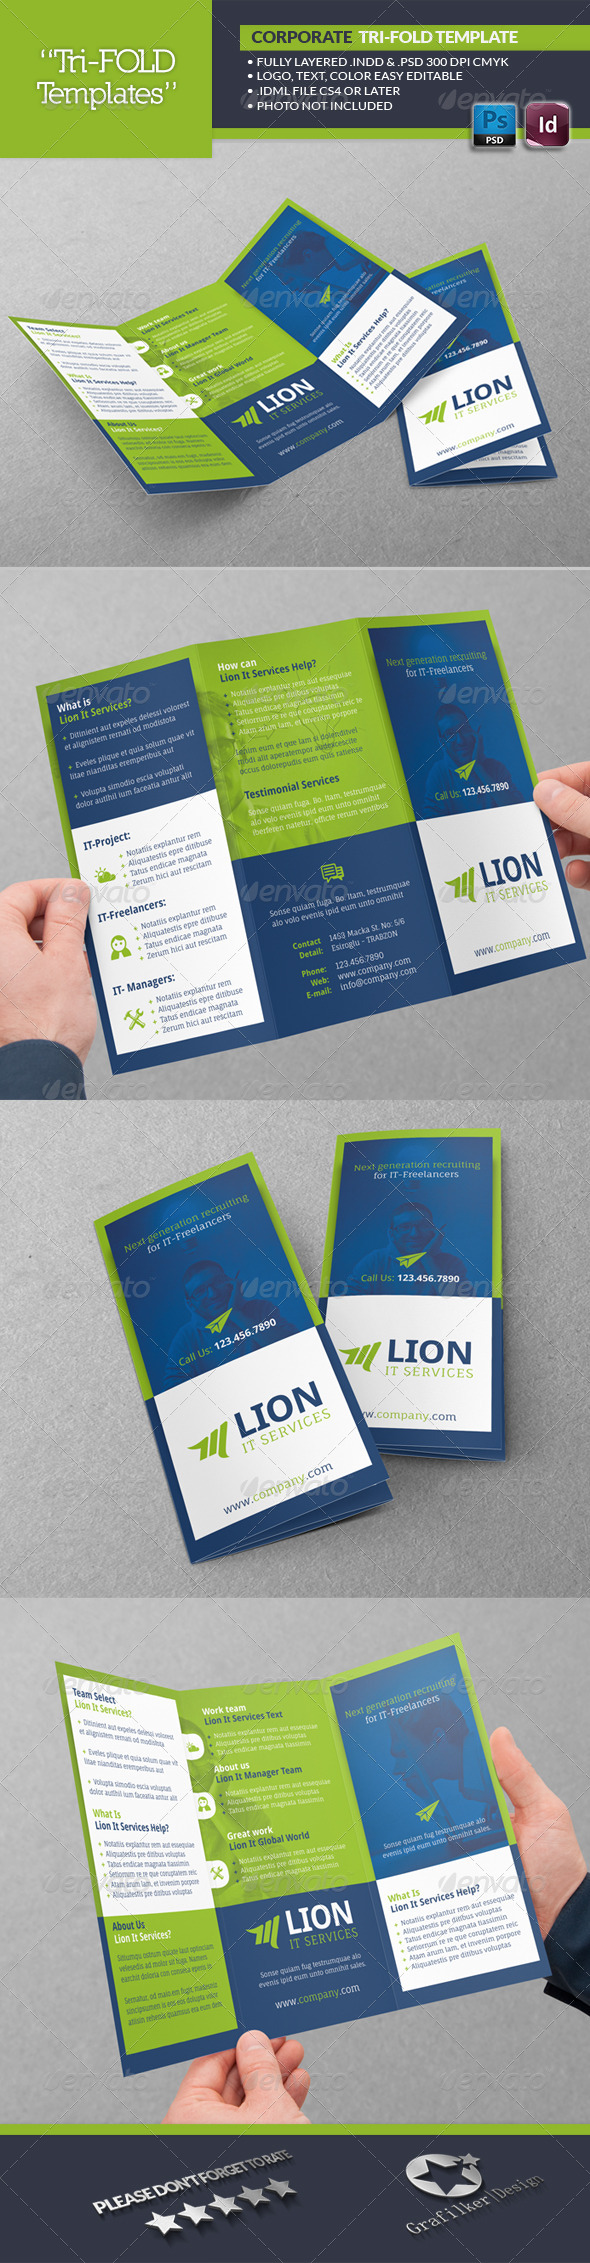 IT Services Tri-Fold Template - Brochures Print Templates